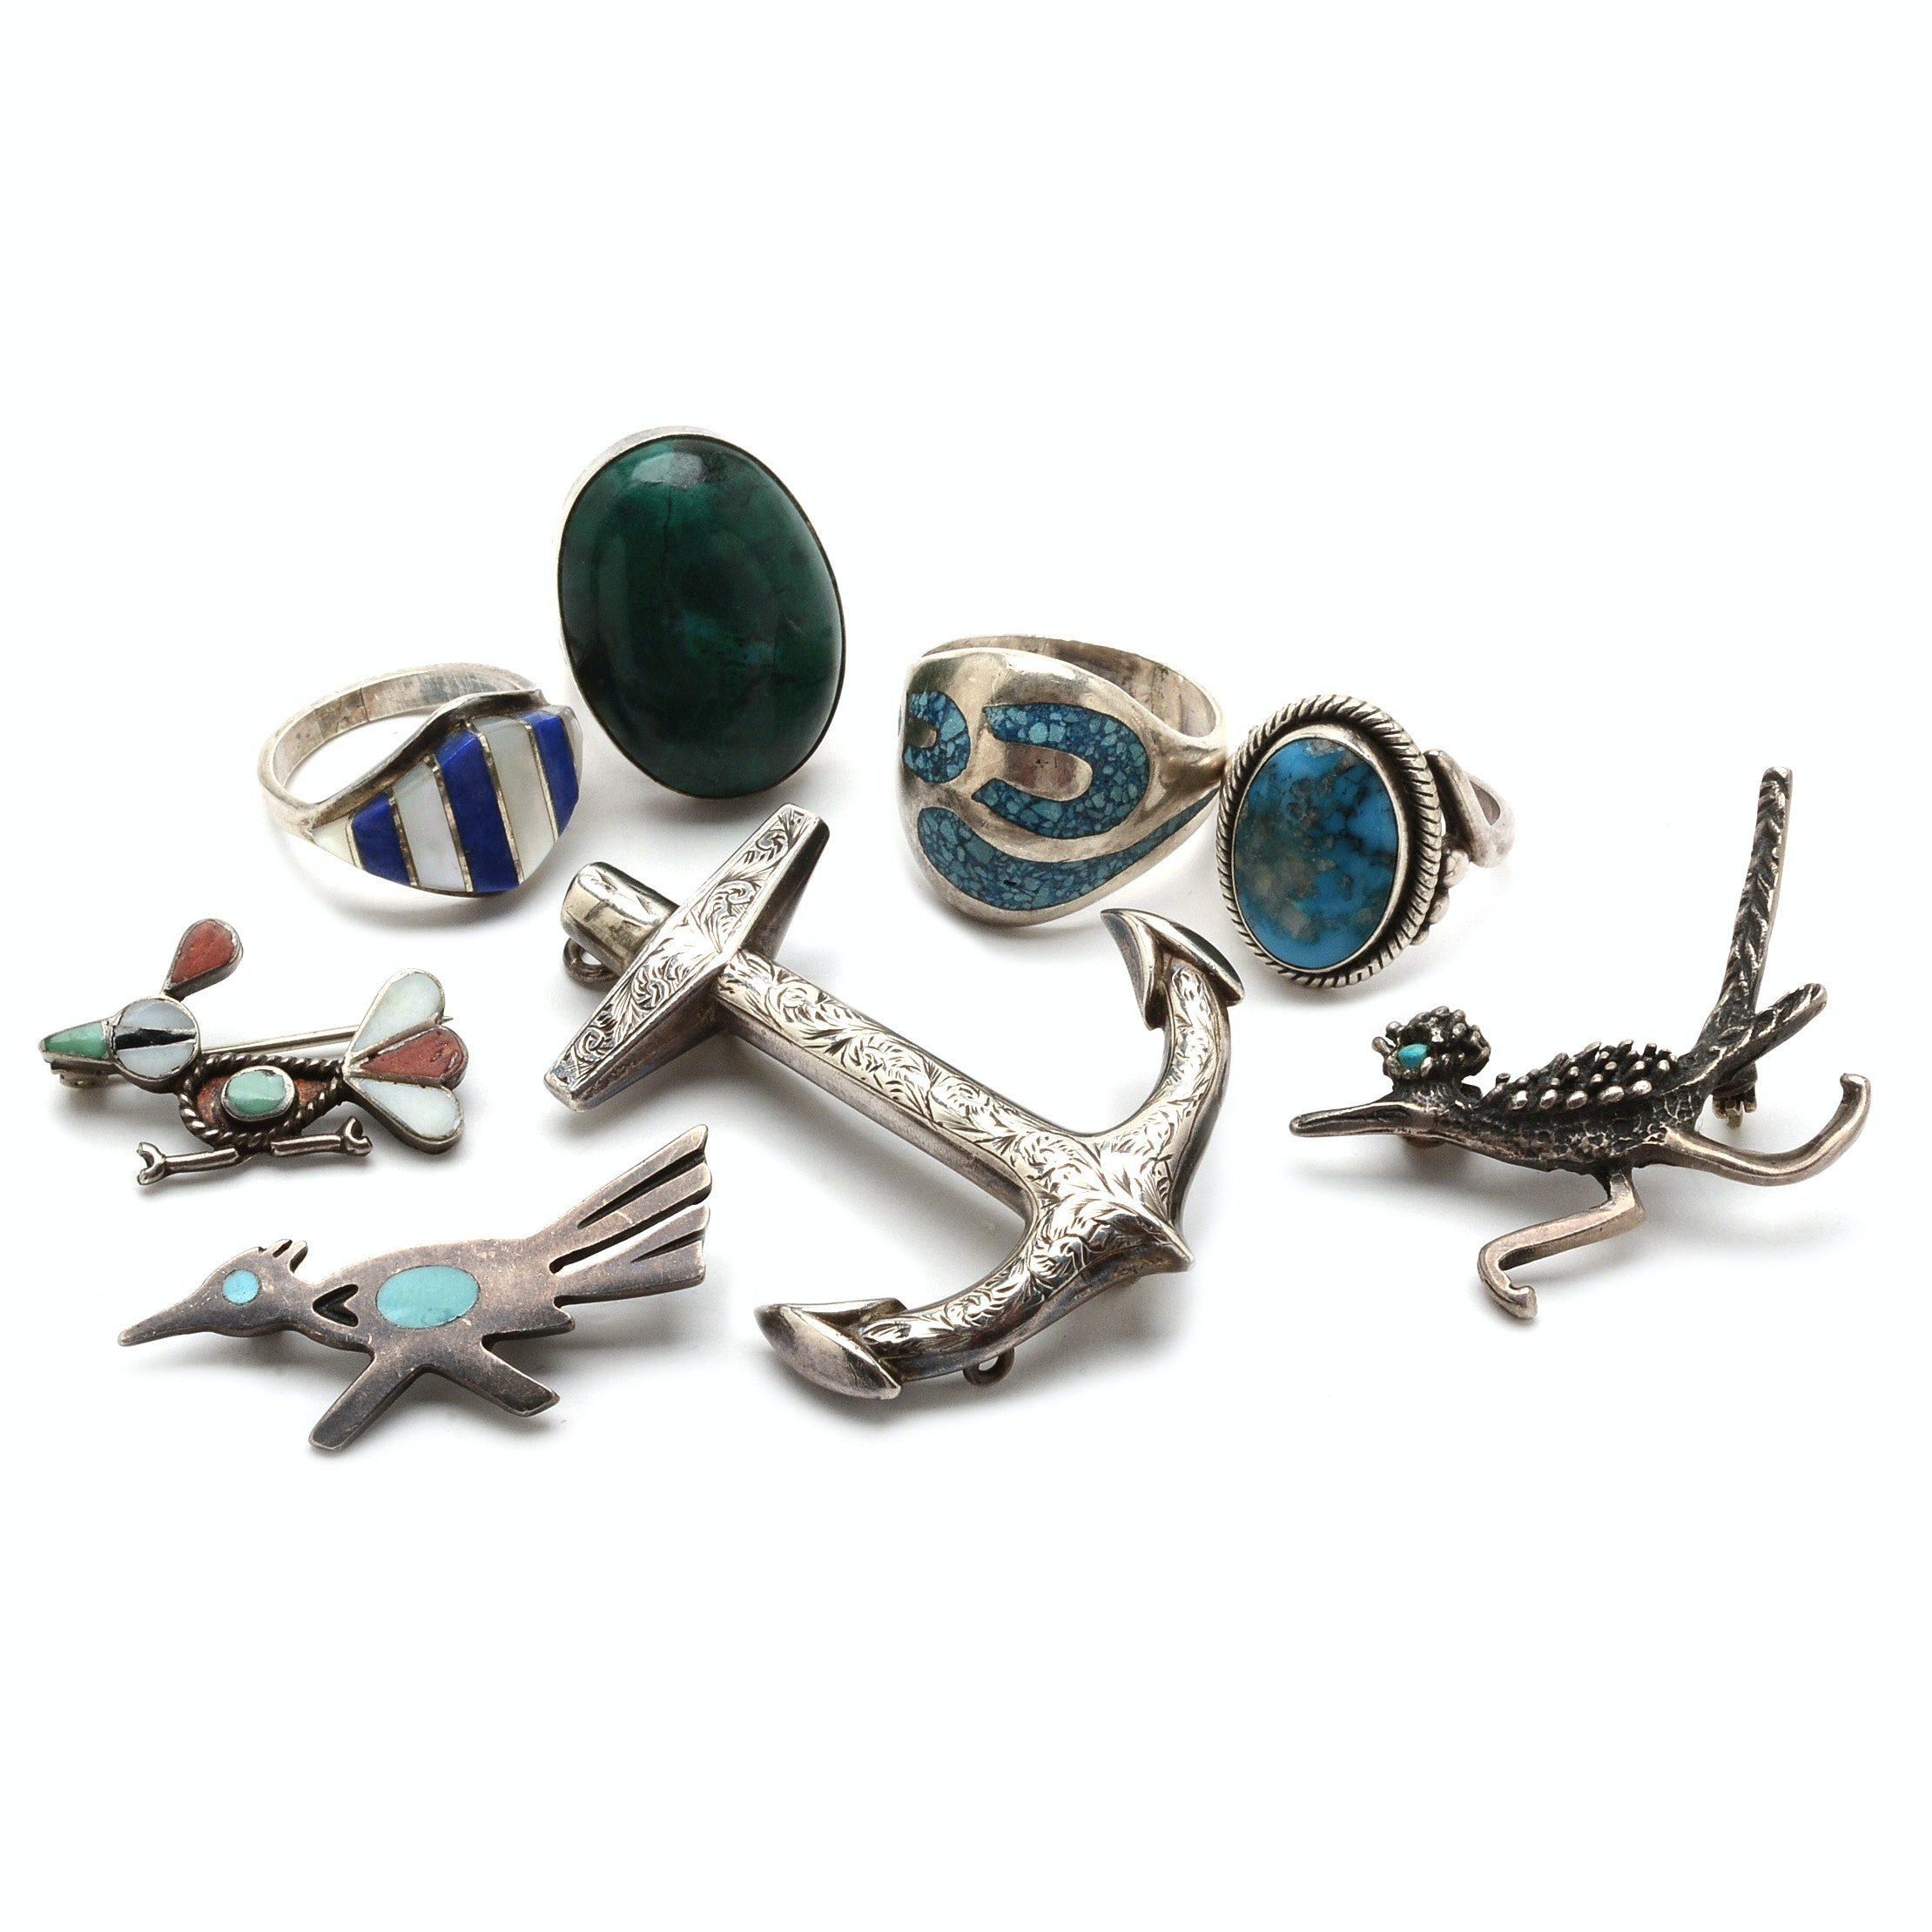 Sterling Jewelry Collection Including Roadrunner Brooches